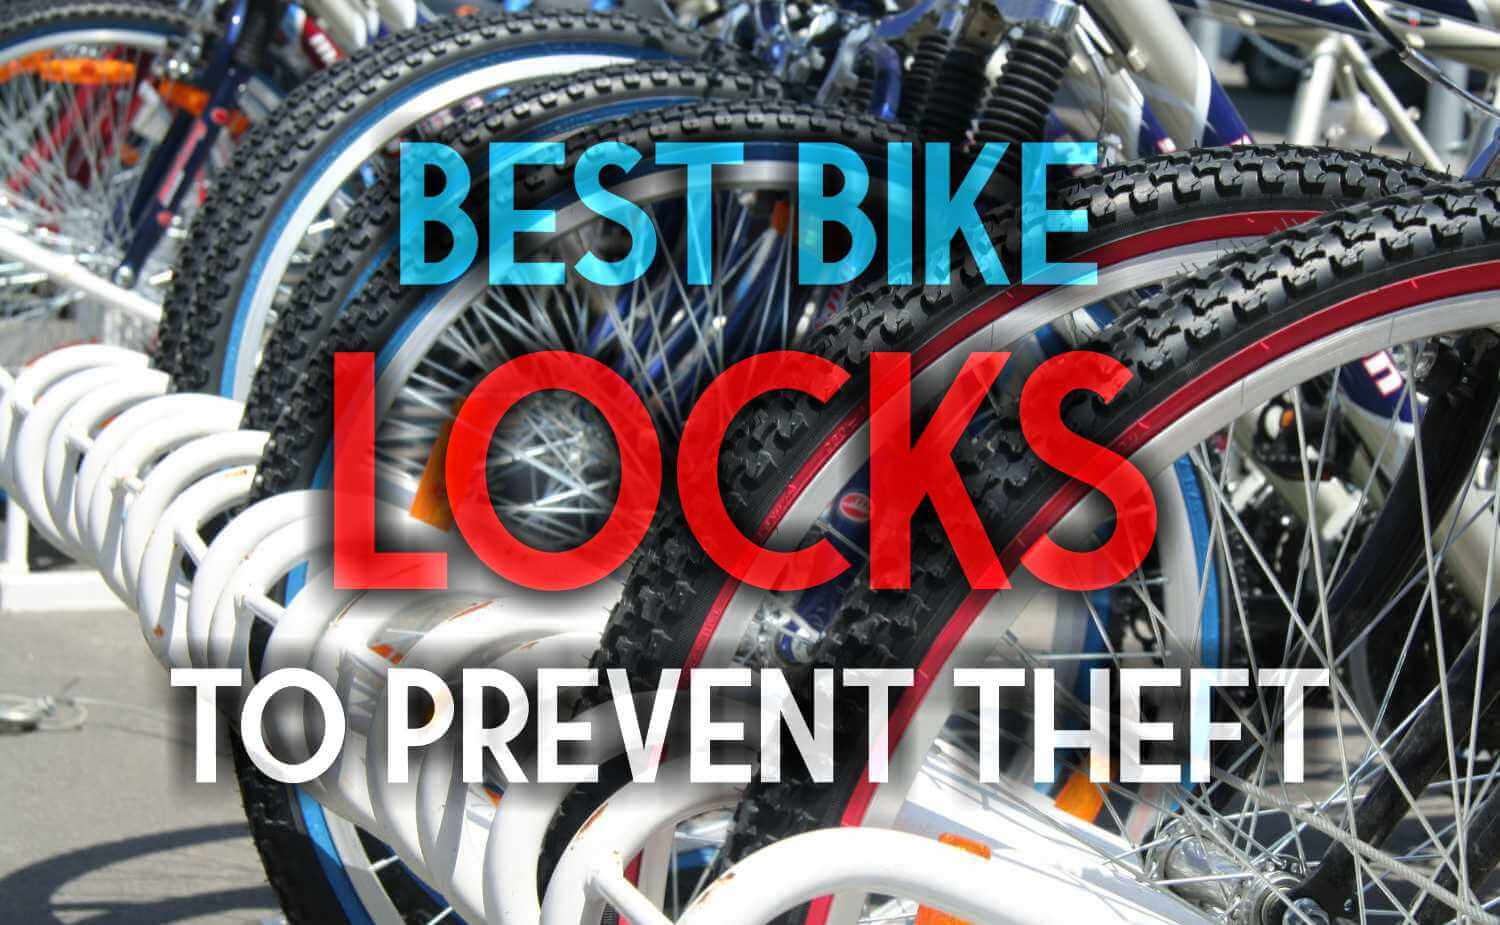 MAX LIMIT BIKE LOCK CYCLE BICYCLE STEEL CABLE PADLOCK EXTRA STRONG SECURITY KEY